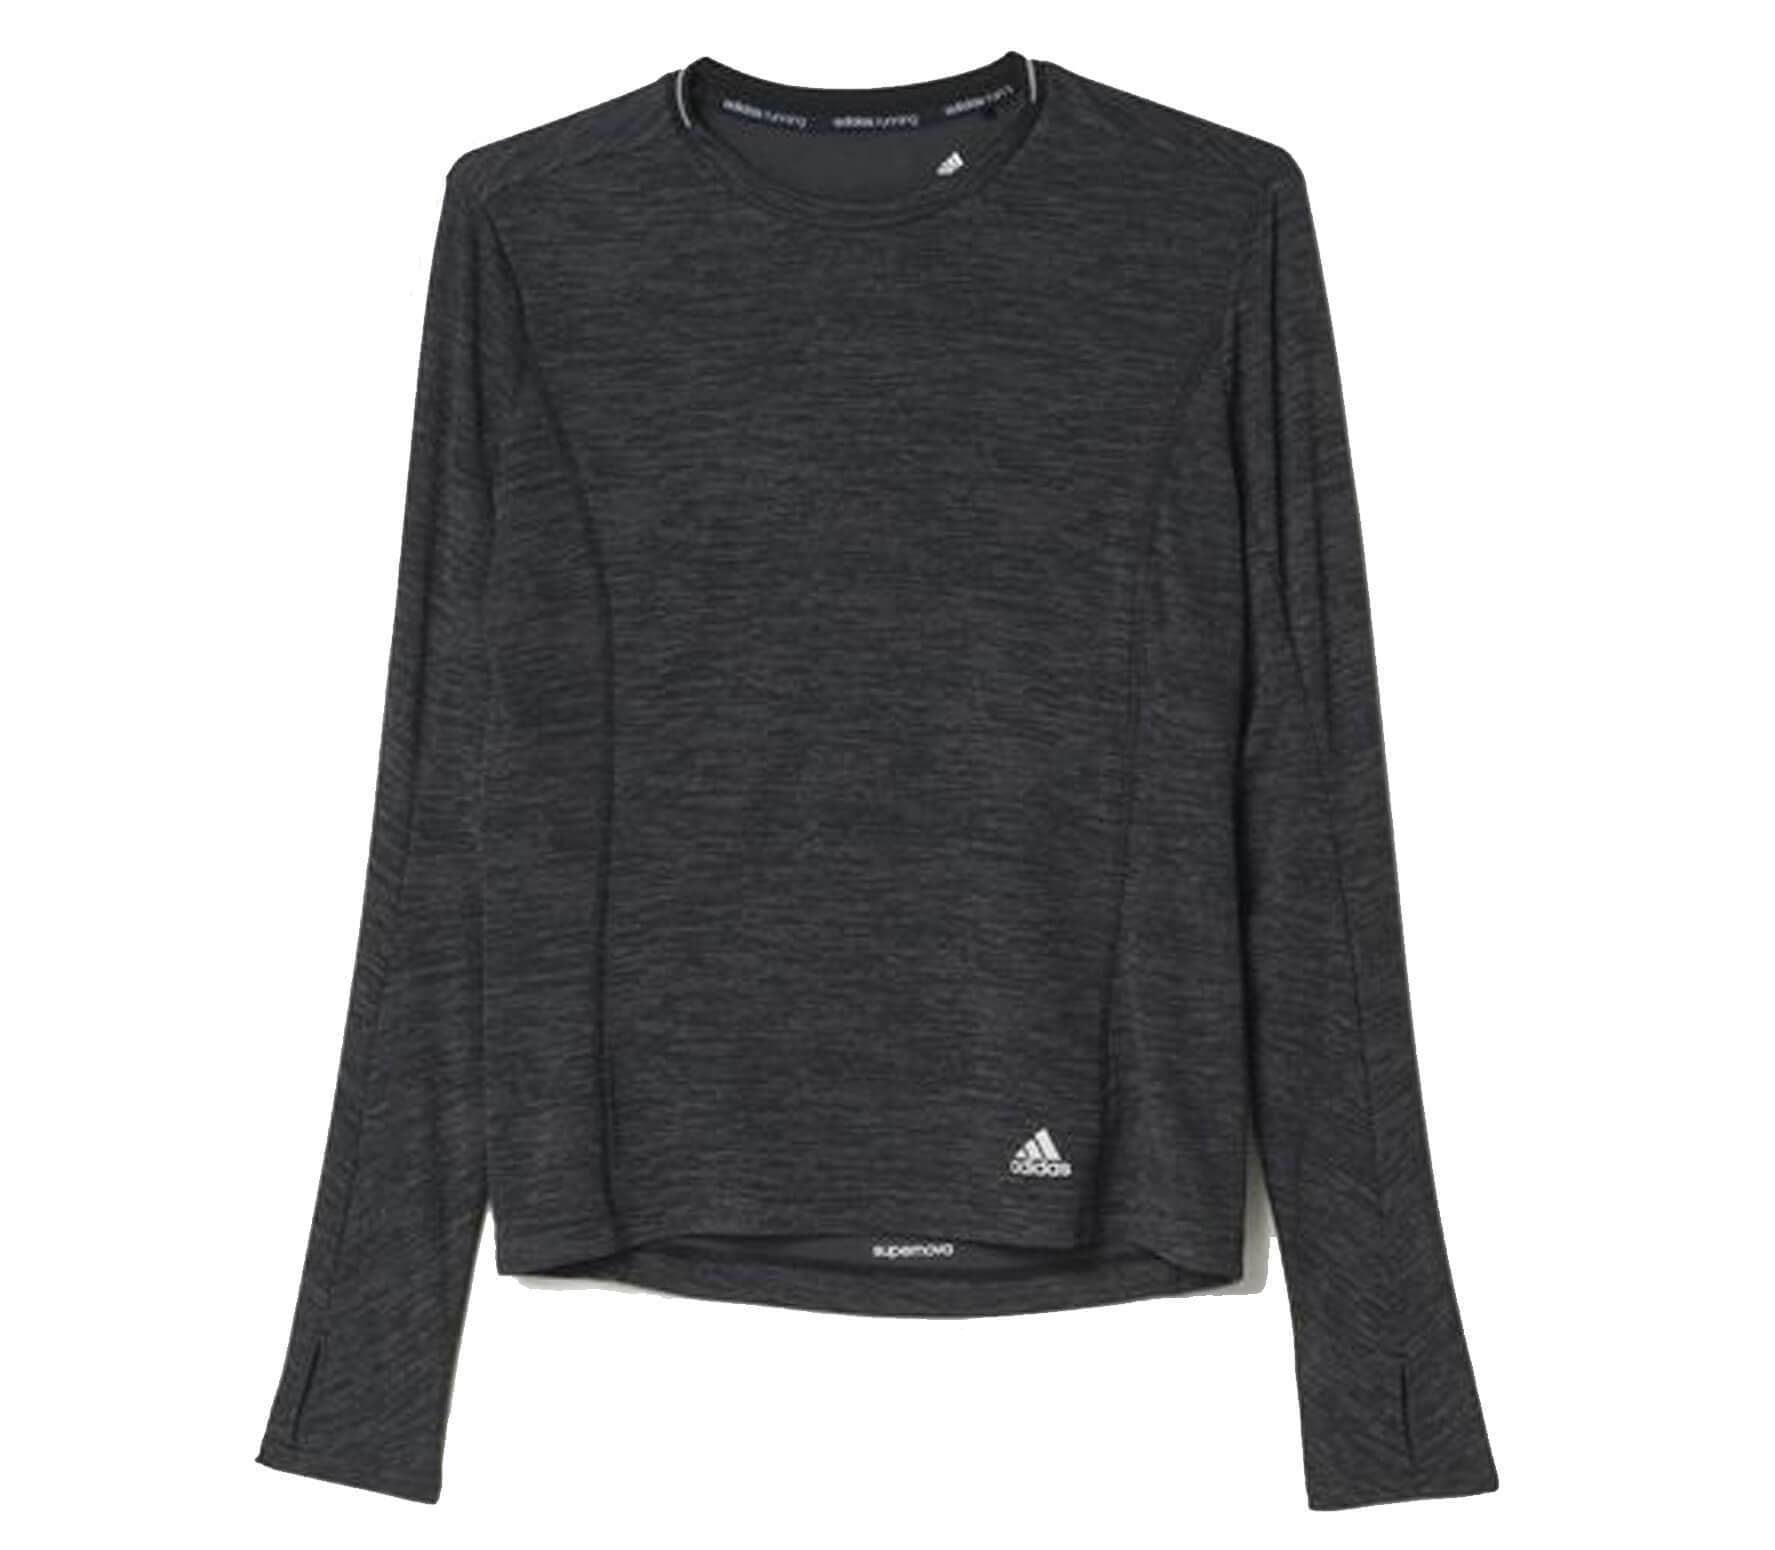 60c3769b Adidas - Supernova long-sleeved women's running top (black) - buy it ...